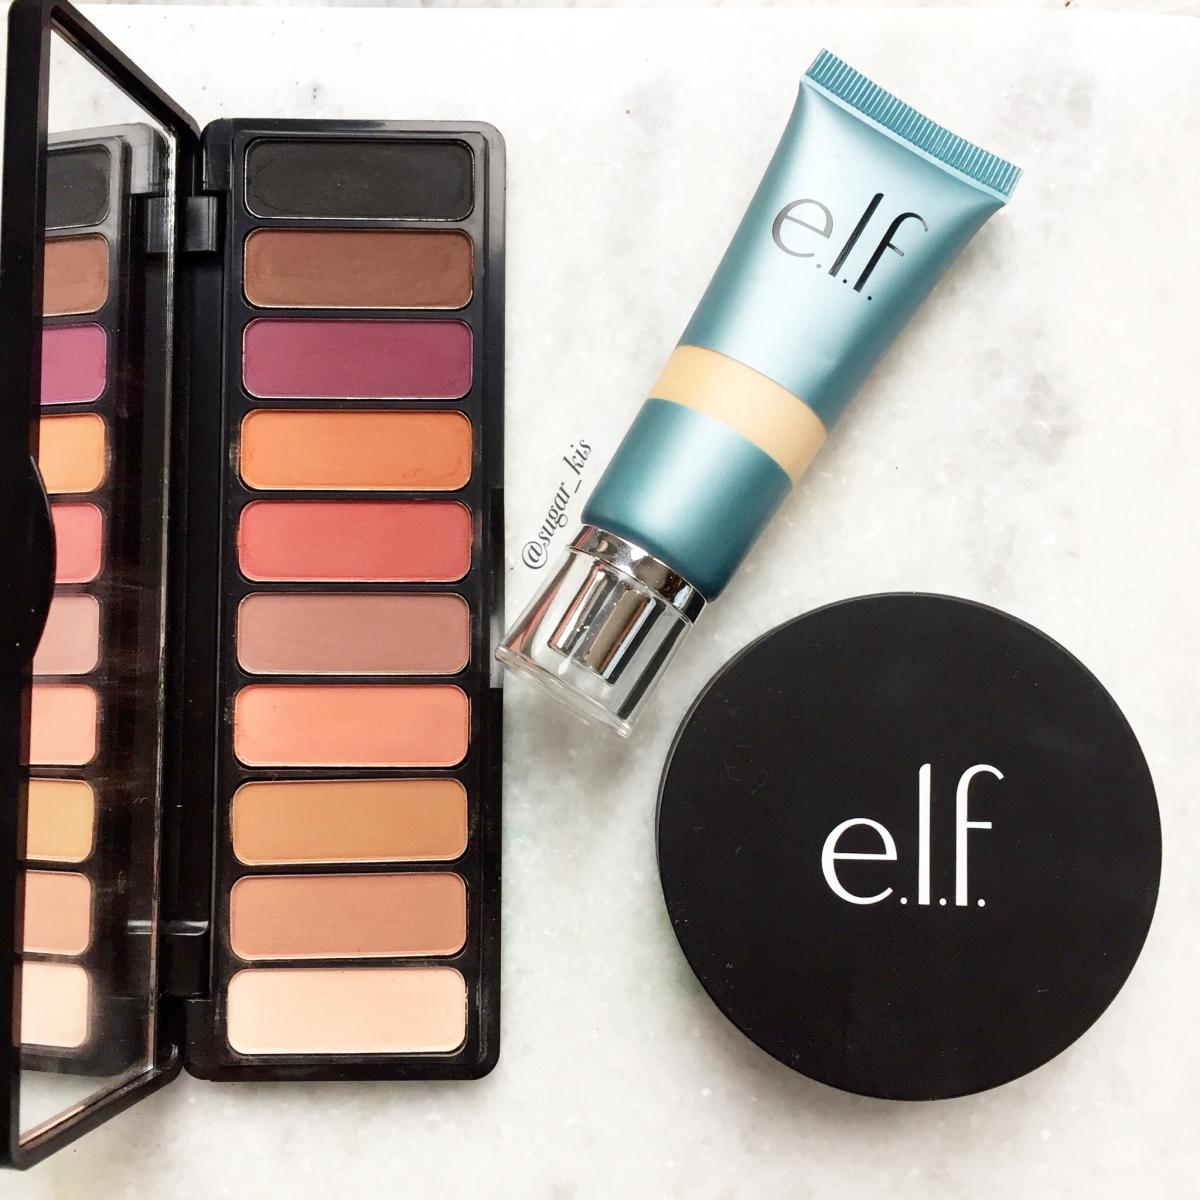 New ELF Makeup Review: Mad for Matte 2, Aqua Foundation, and HD Highlighting Powder.